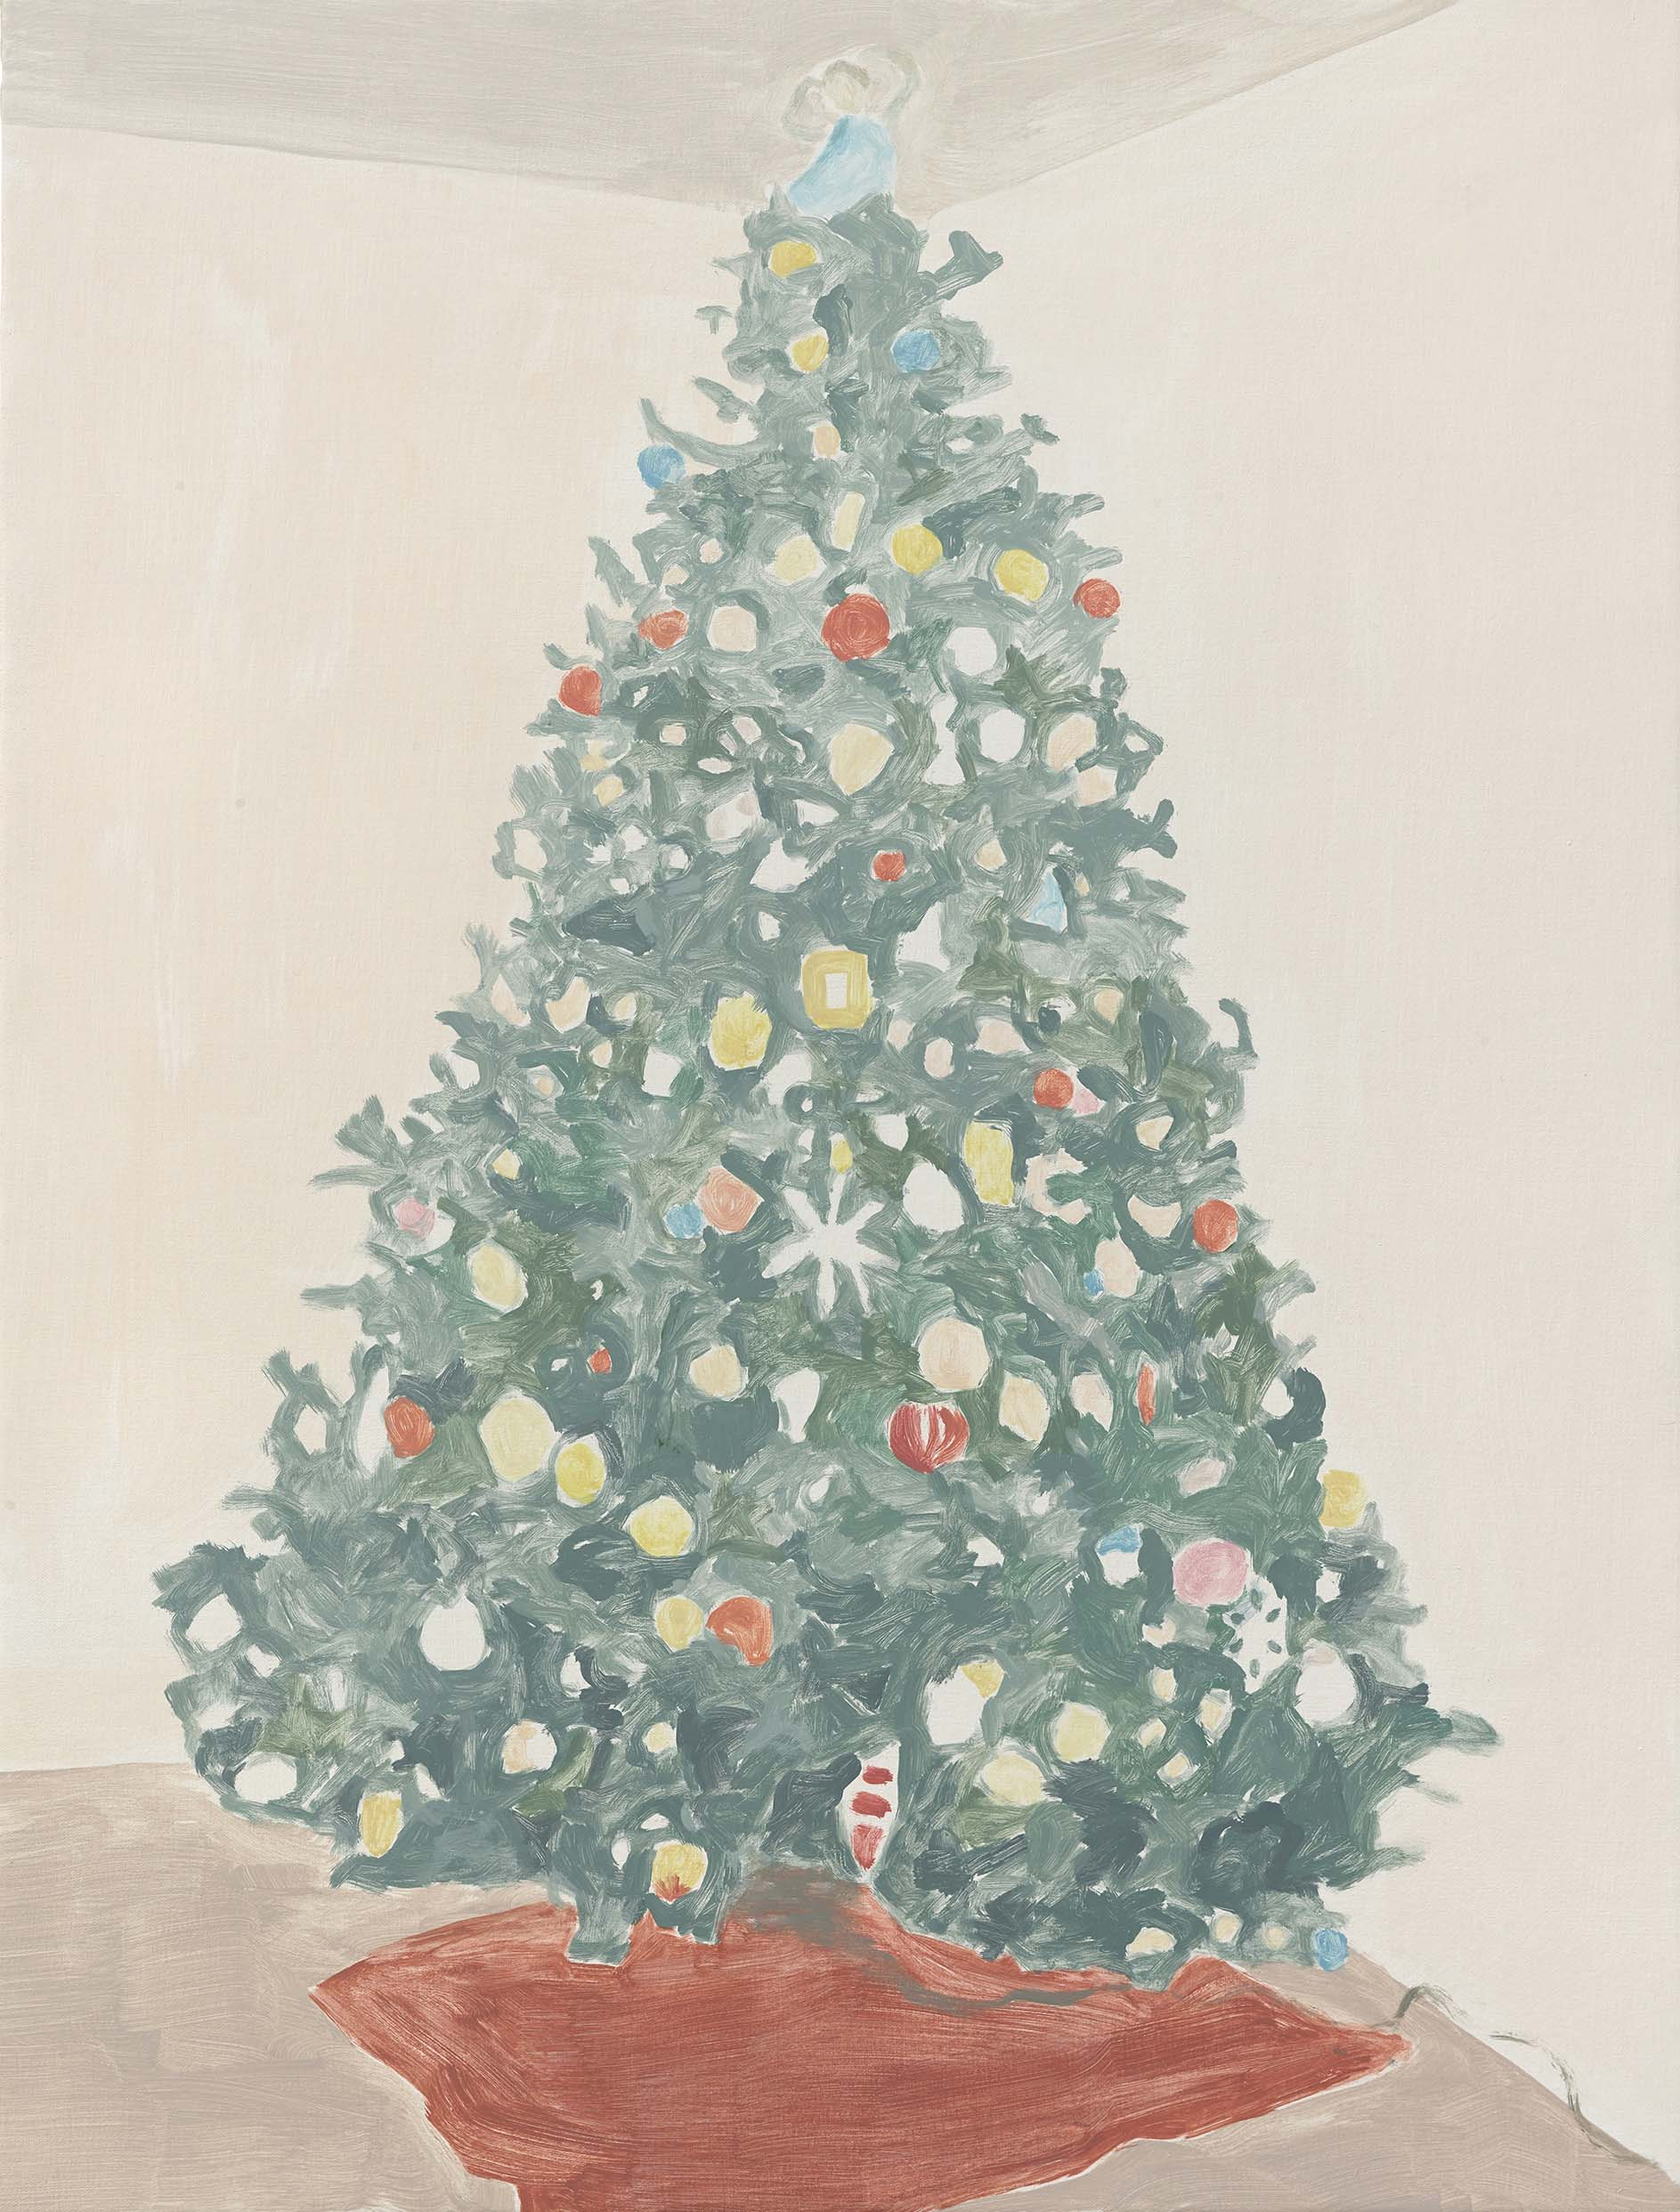 Xmas Tree 3 (red rug), acrylic on canvas, 32 x 24.25 inches, 2014.